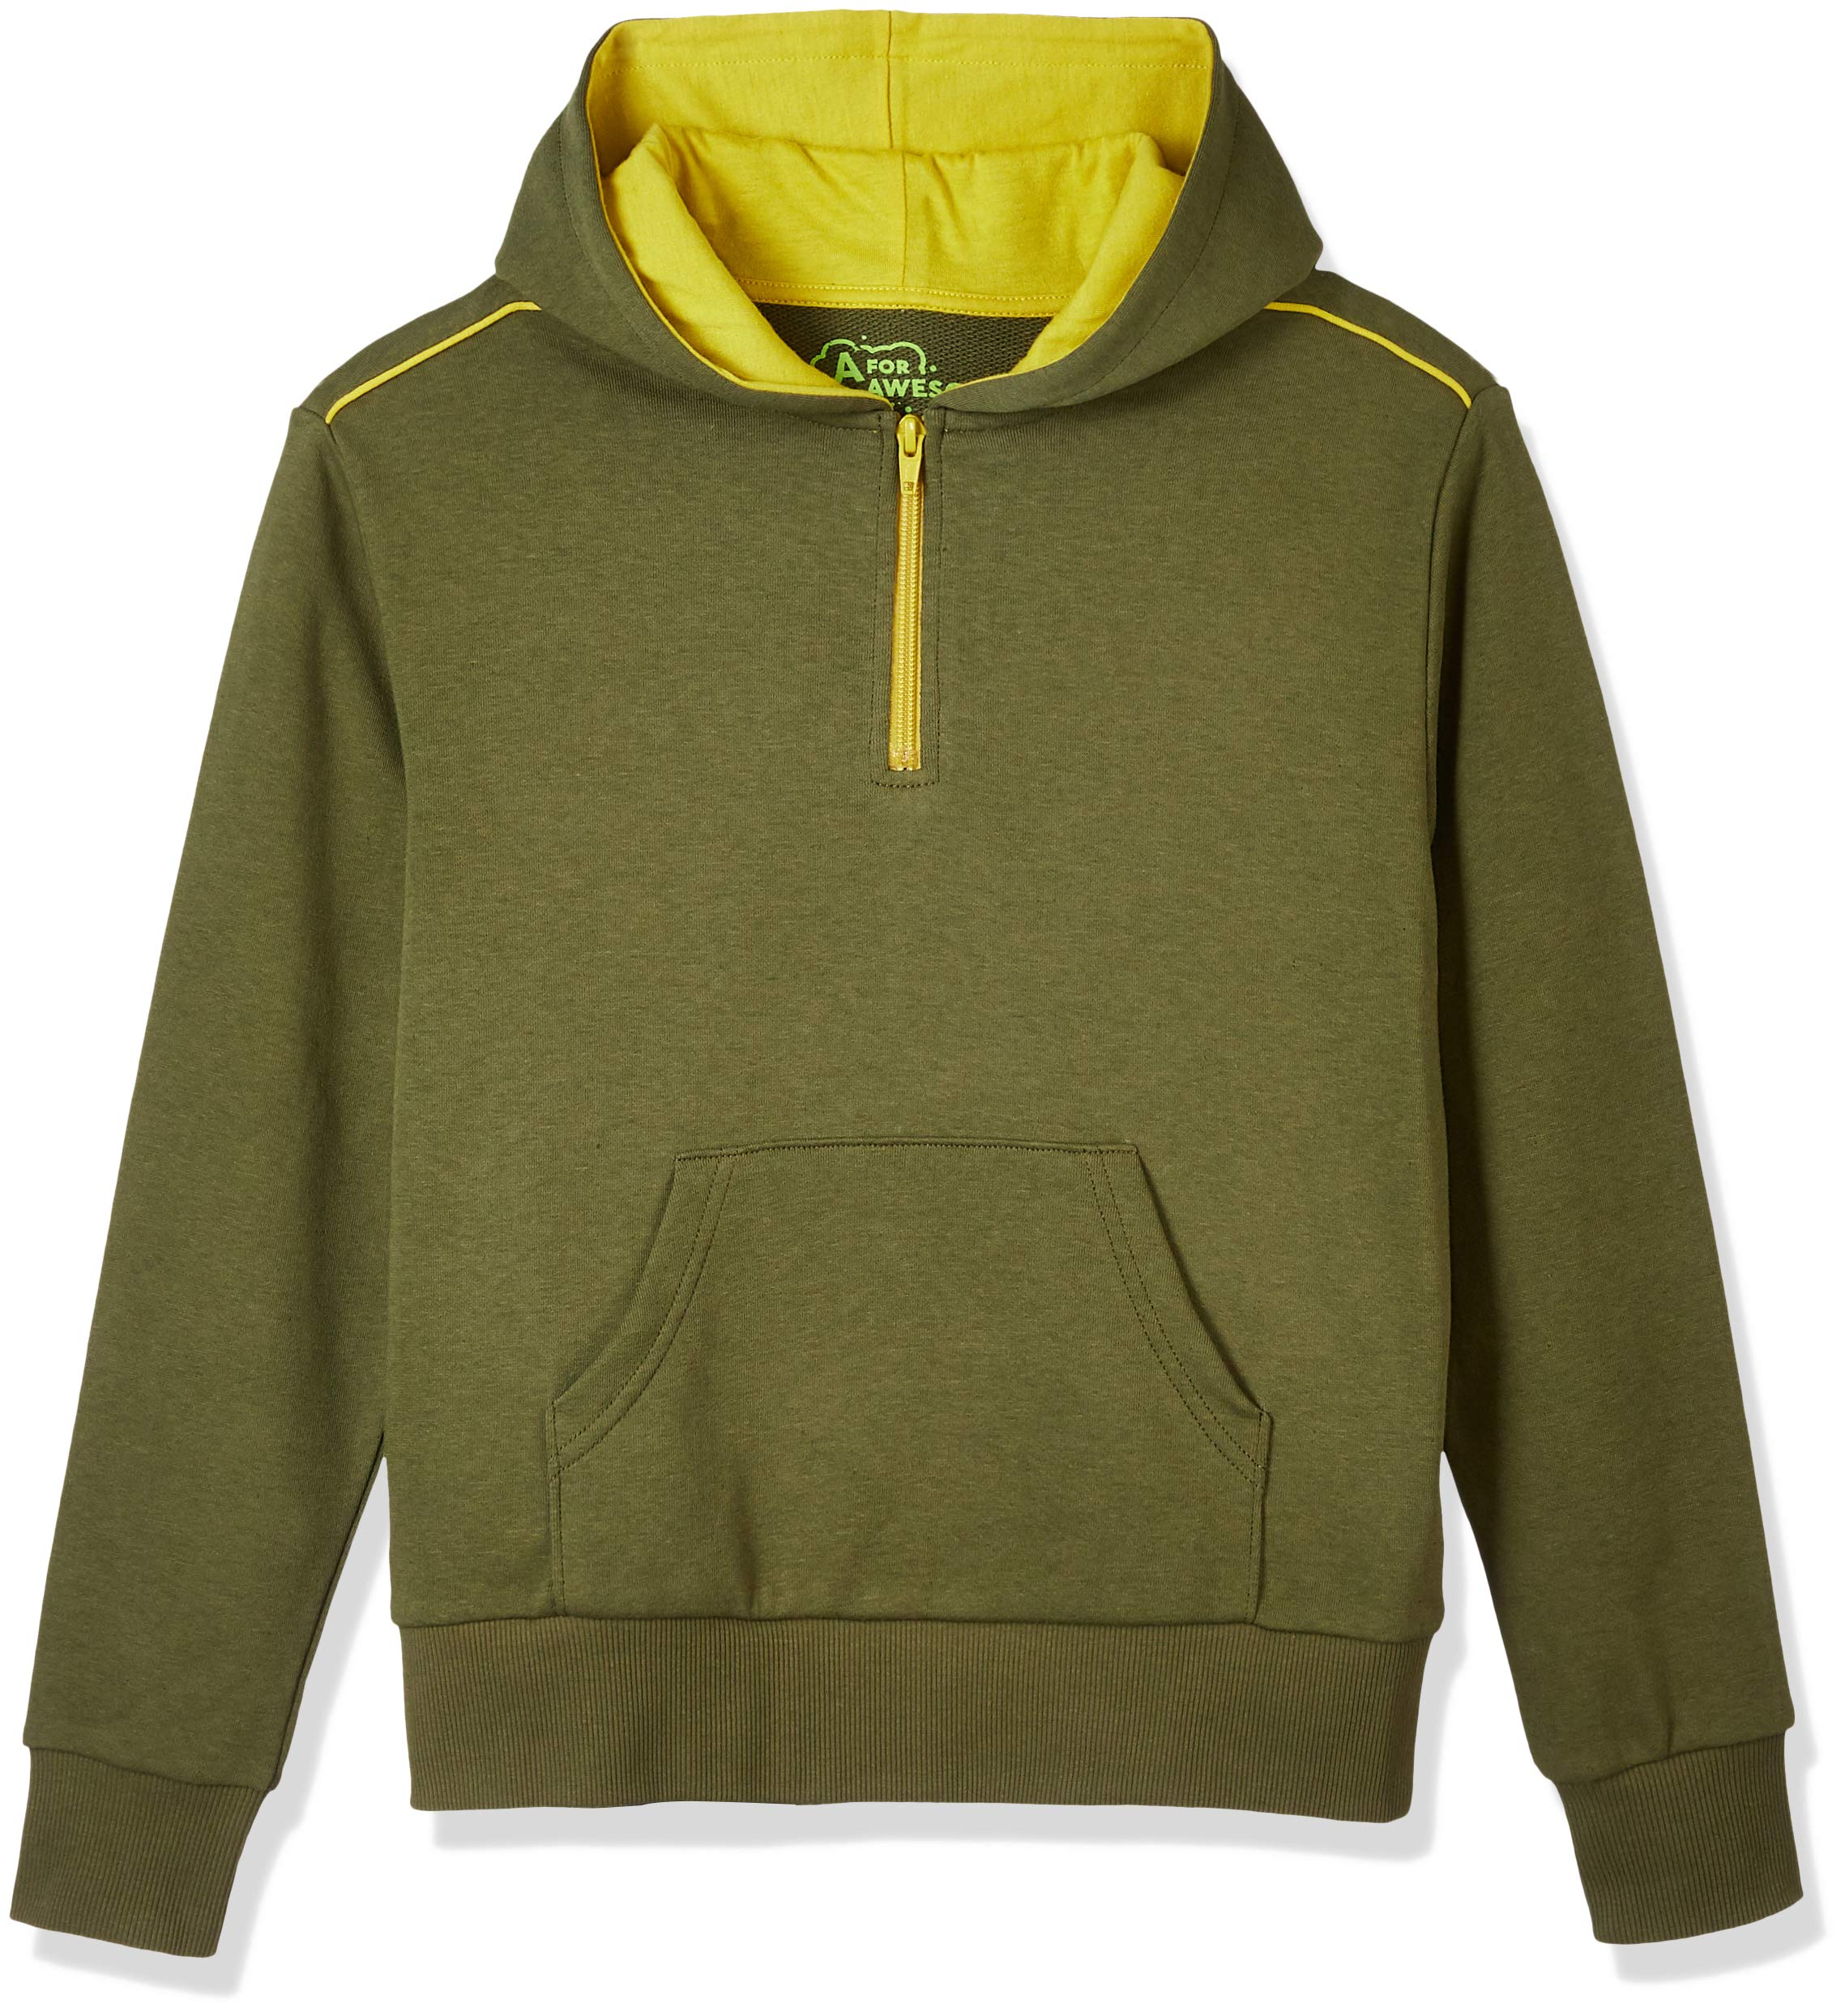 A for Awesome Youth Boys Long Sleeve Hoodie Sweater Small Khaki